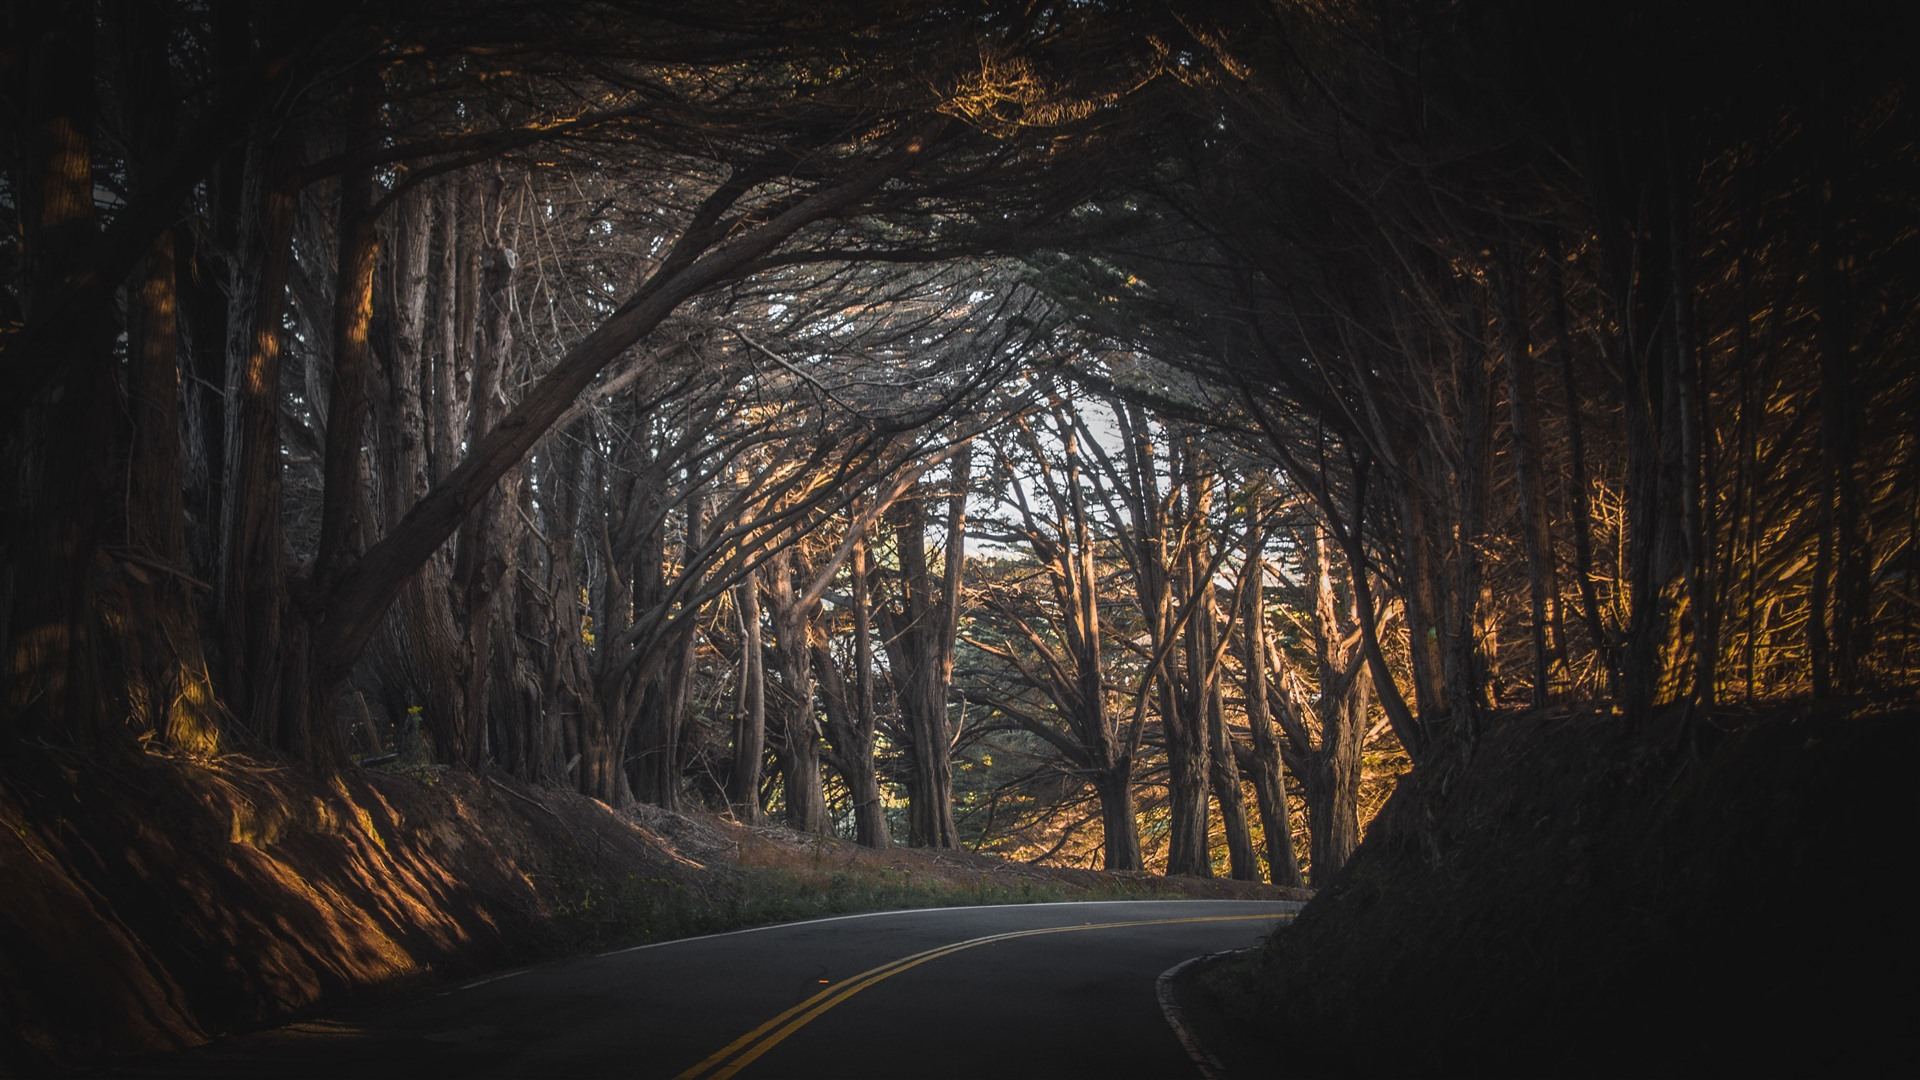 Wallpaper Trees Forest Road Channel 3840x2160 Uhd 4k Picture Image